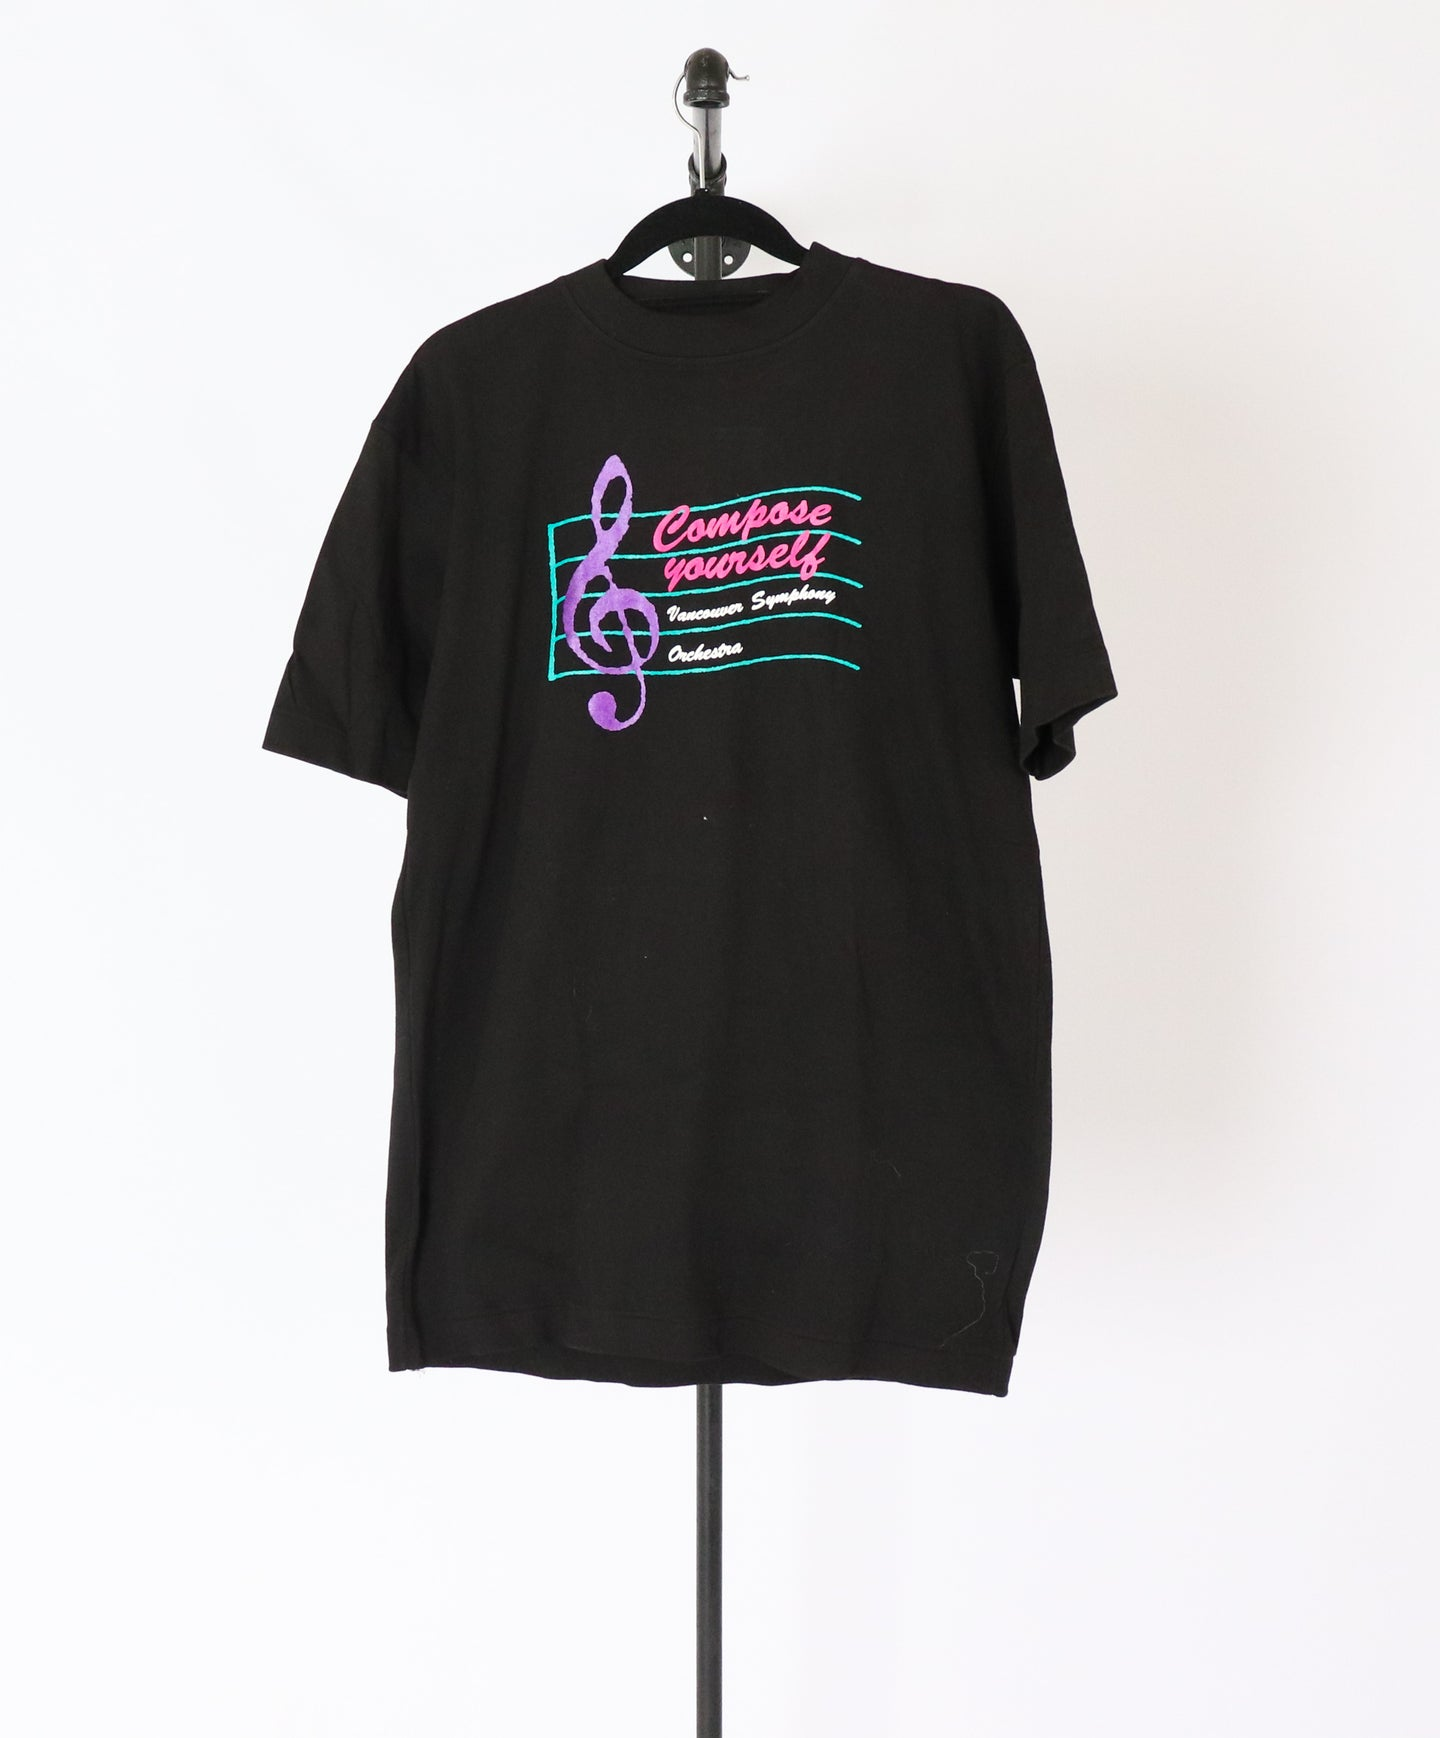 Vintage 'Compose Yourself' Tee (M)